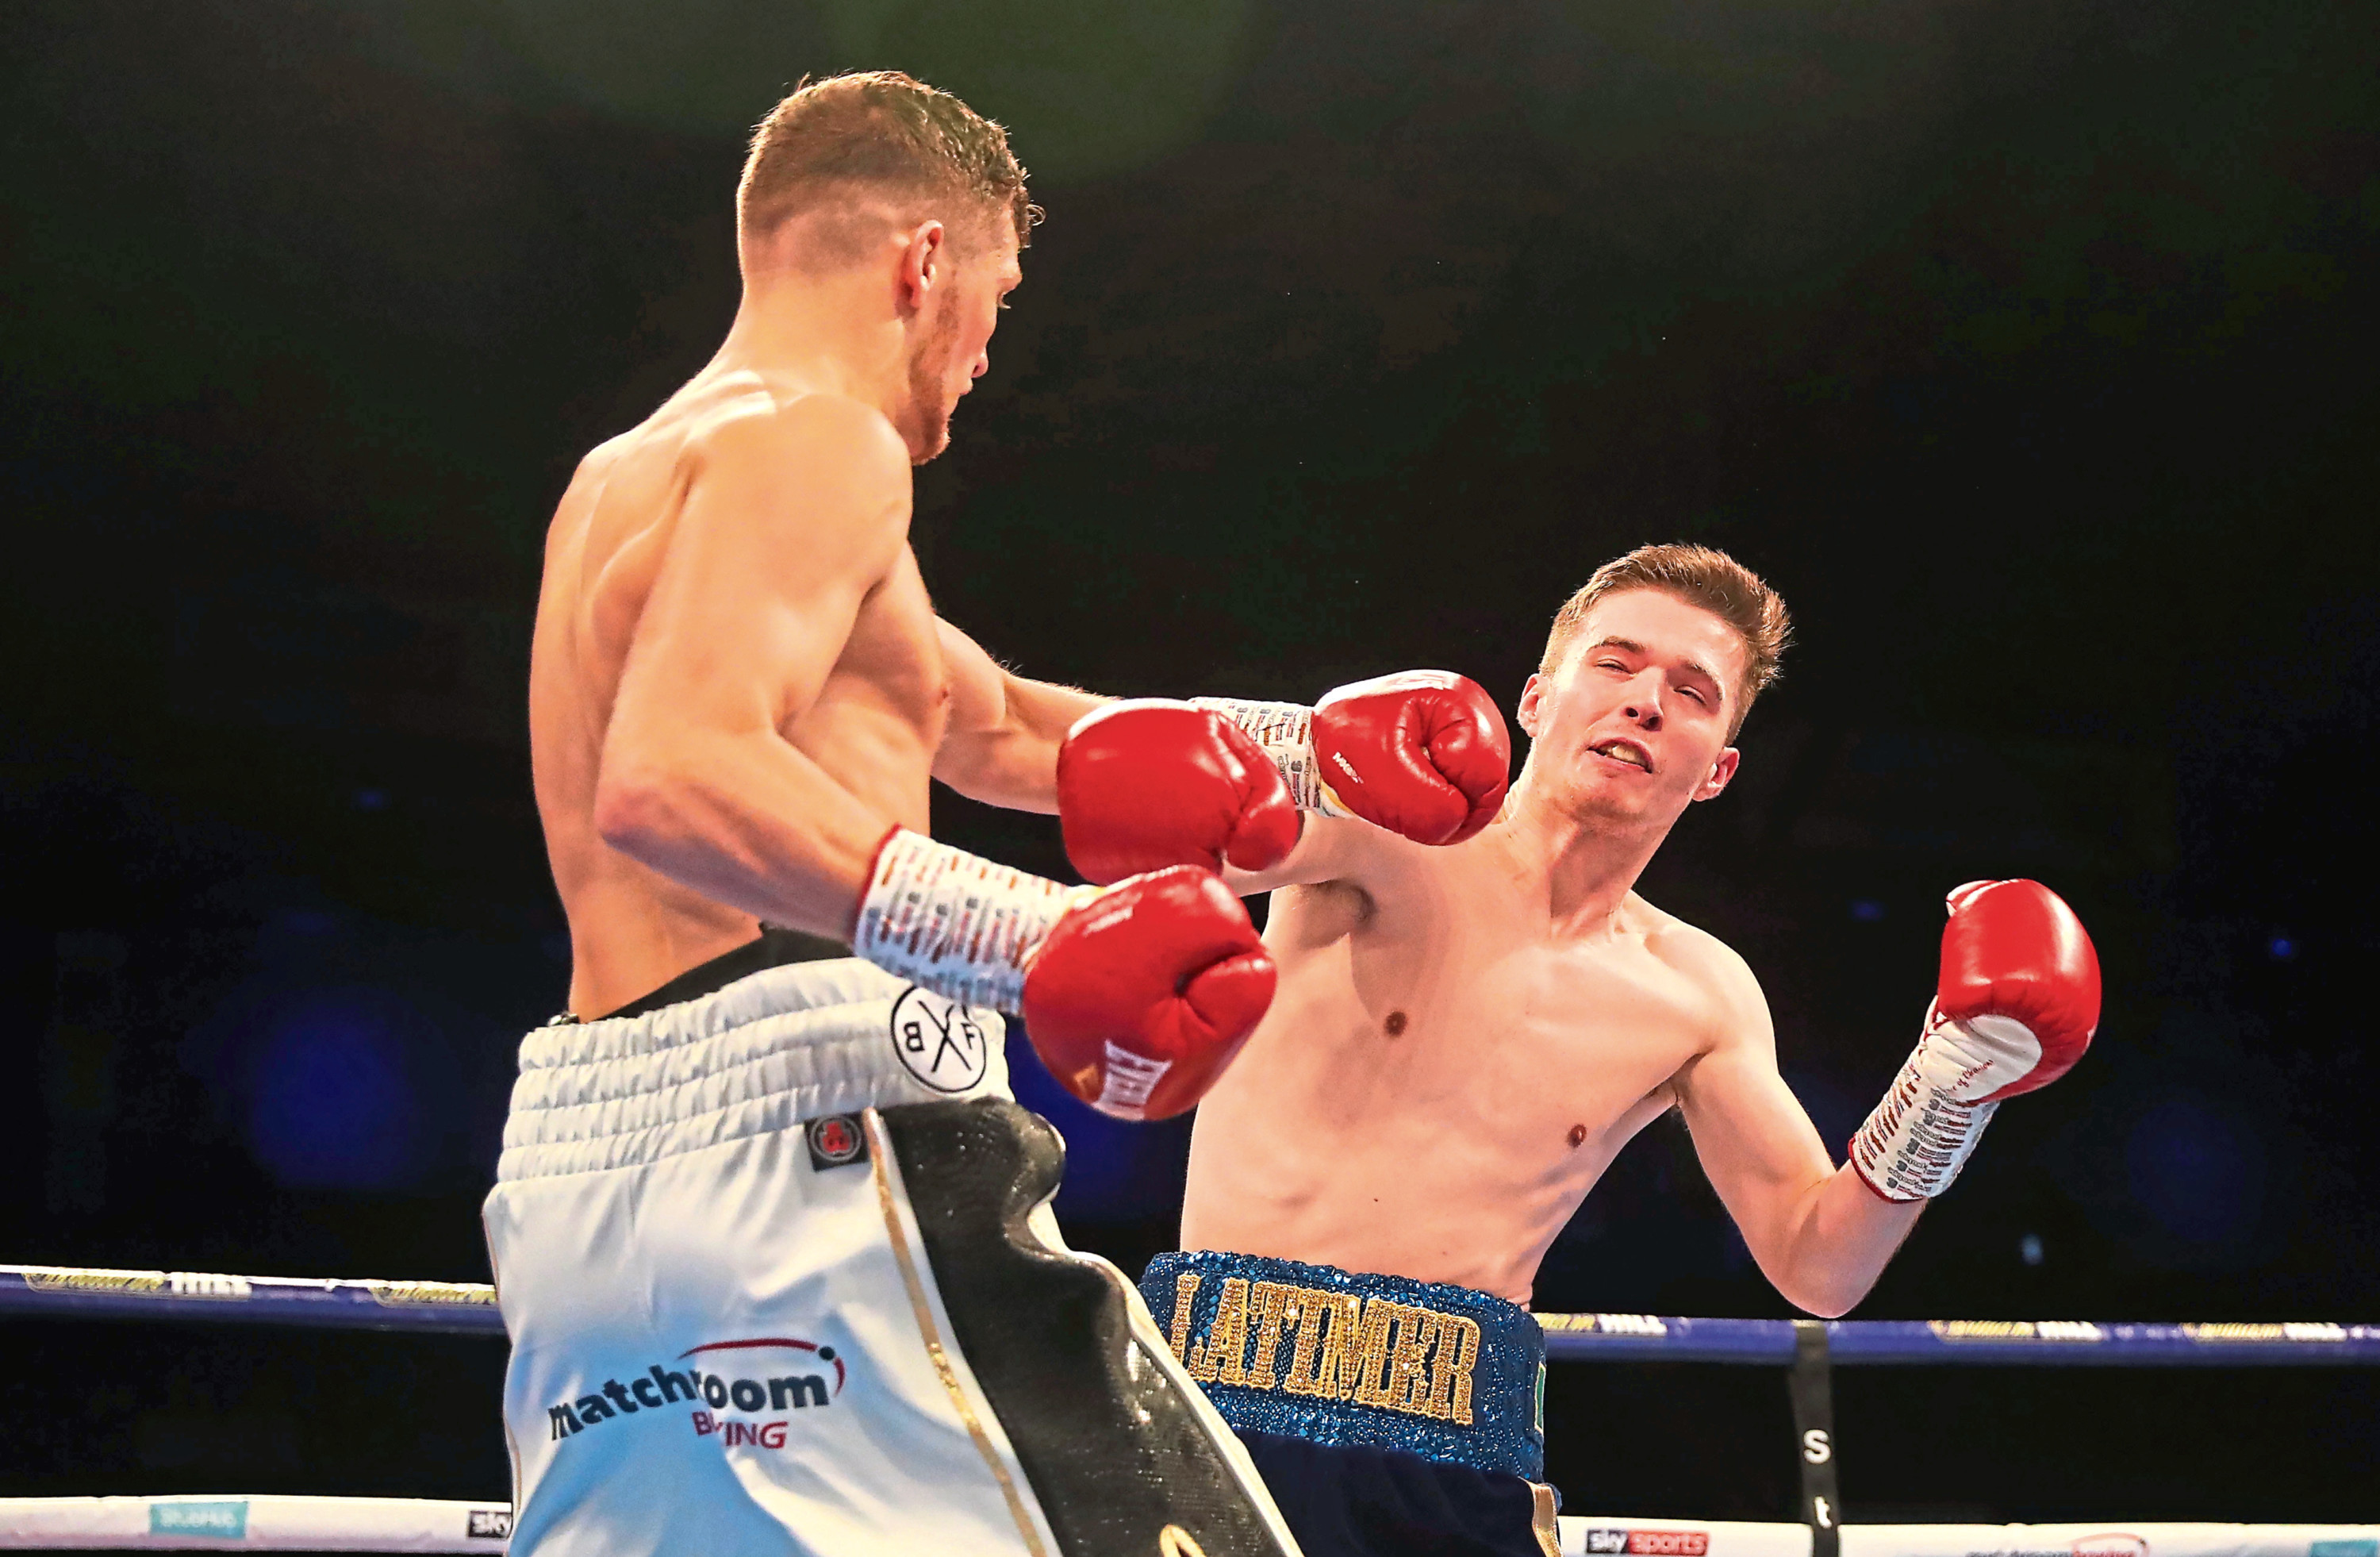 John Docherty knocks down Jordan Latimer  during a super-bantamweight contest at Metro Radio Arena on October 13, 2018 in Newcastle upon Tyne, England.